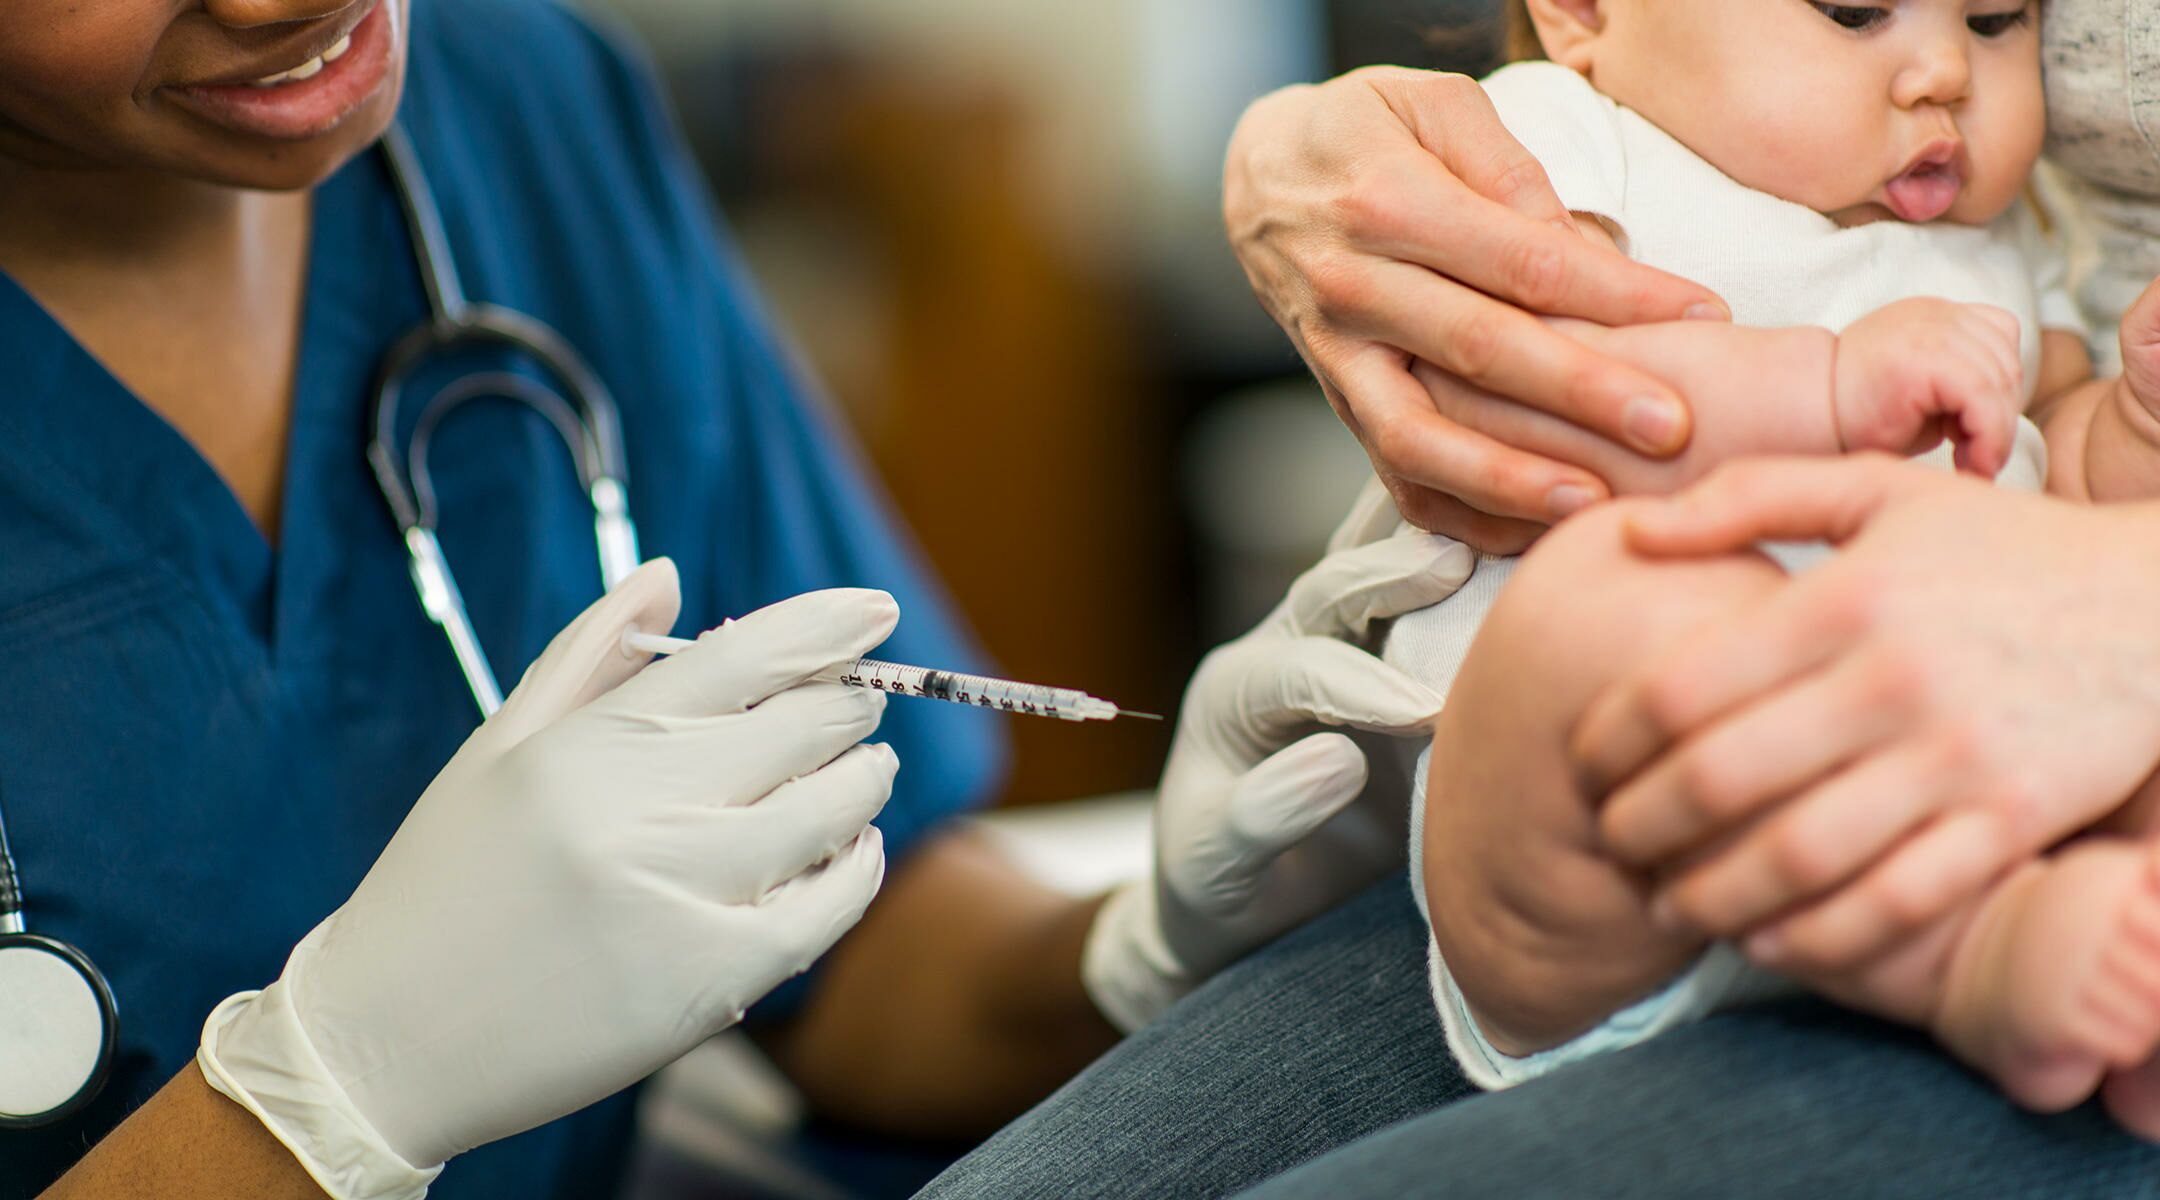 What vaccinations do newborns in the hospital 2